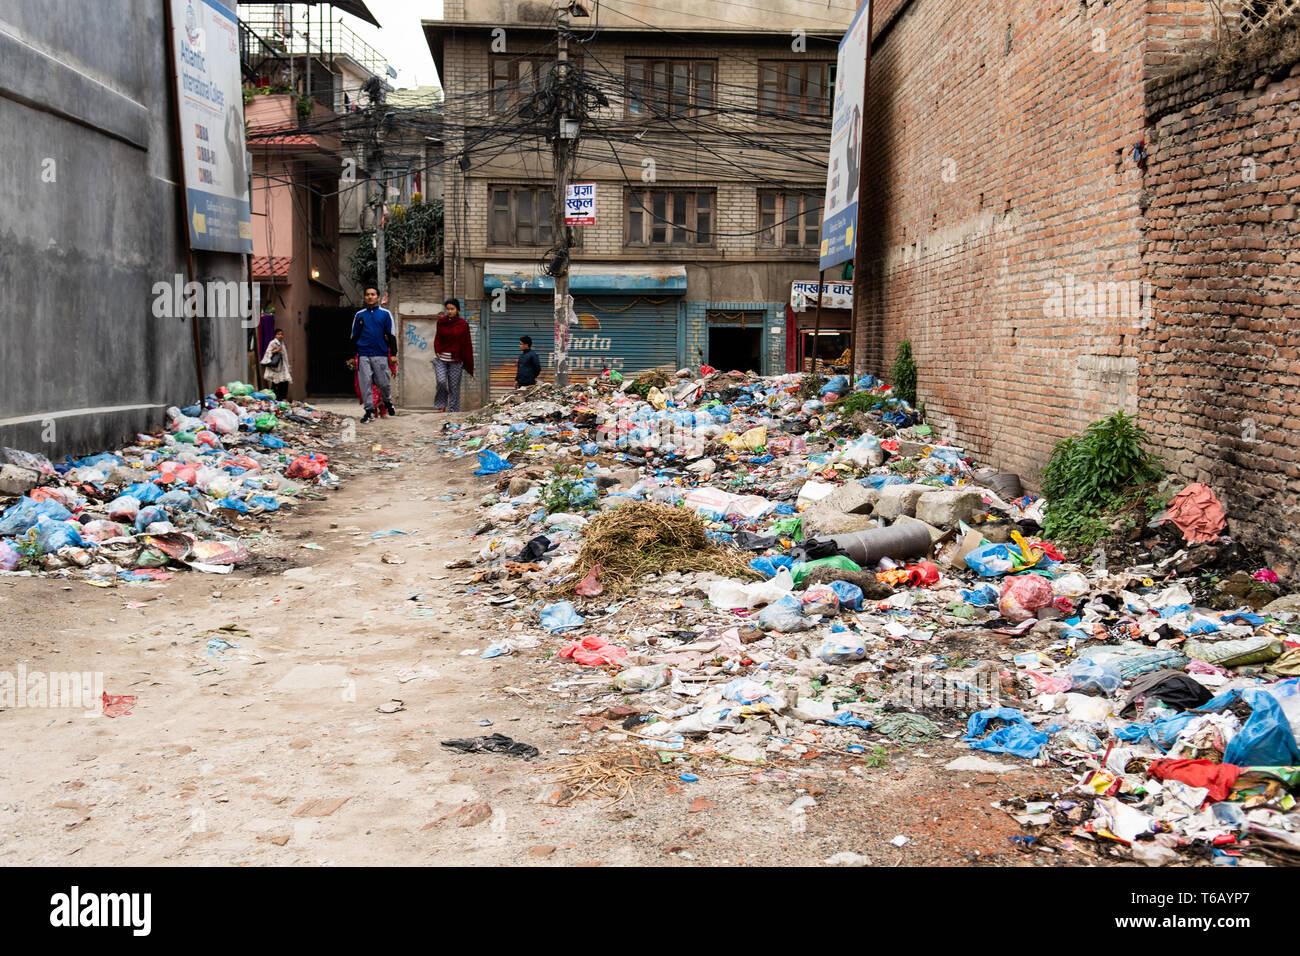 Kathmandu, Nepal - April 20th, 2019 - Garbage Berg in der Straße in der Nähe der Häuser. Stockfoto